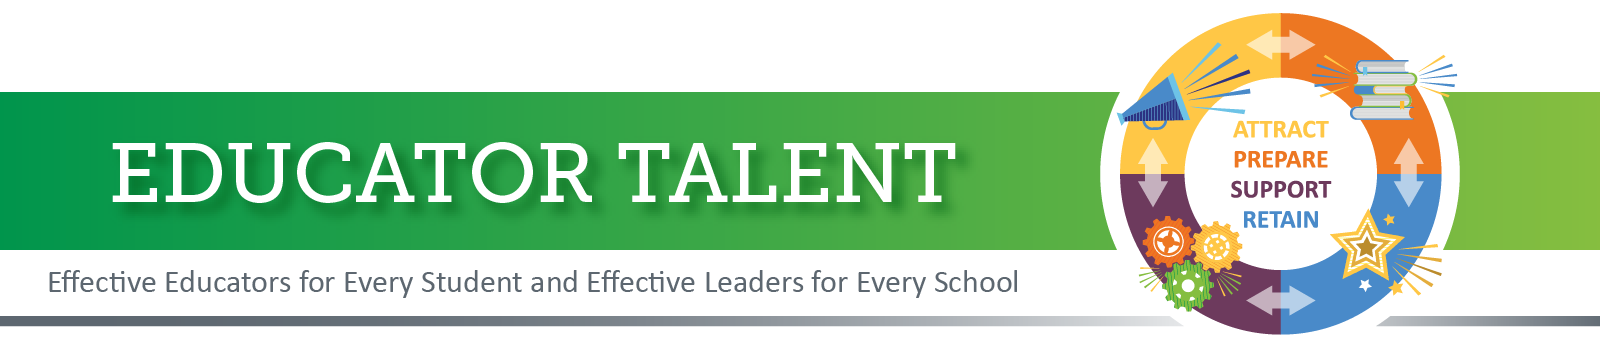 Educator Talent: Effective Educators for Every Student and Effective Leaders for Every School.  Attract (Megaphone), Prepare (Stack of Books), Support (Gears Turning) and Retain (Shooting Star)